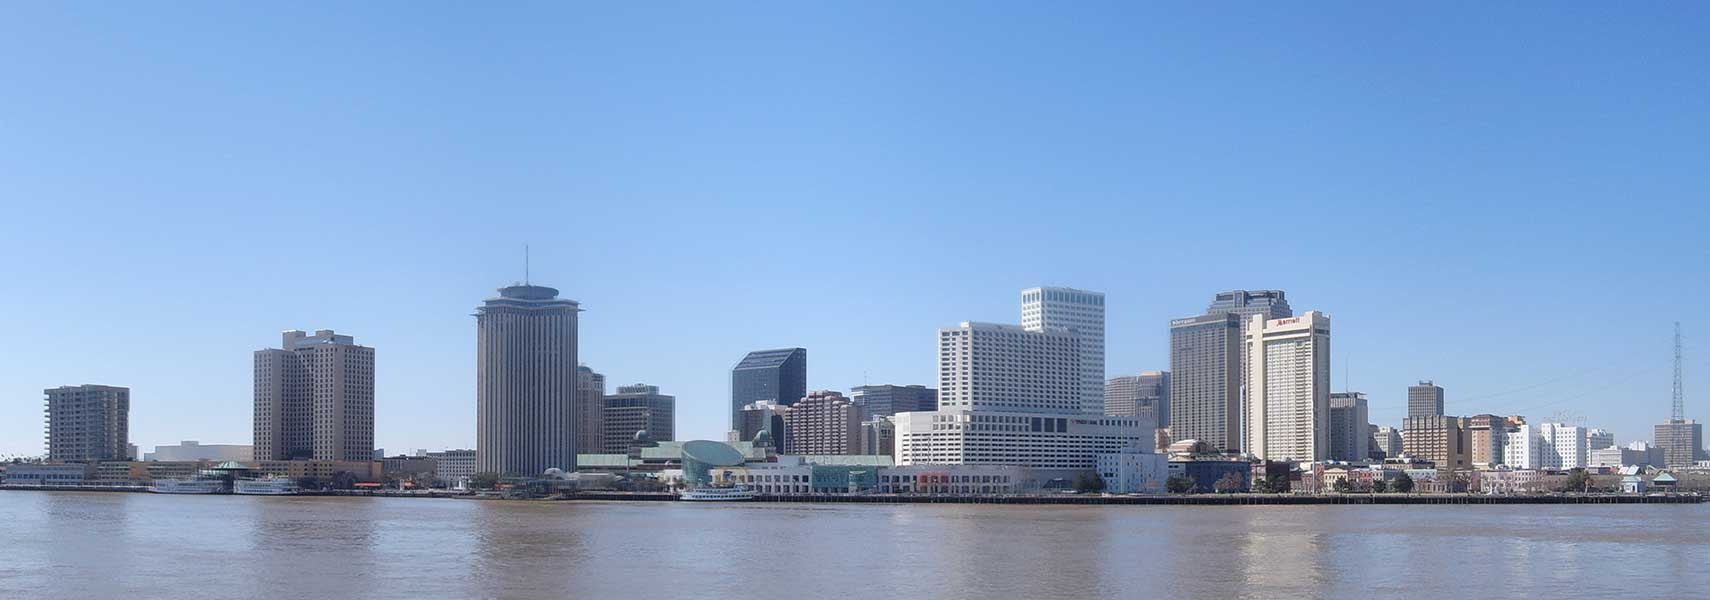 Google Map Of New Orleans Louisiana USA Nations Online Project - New orleans usa map